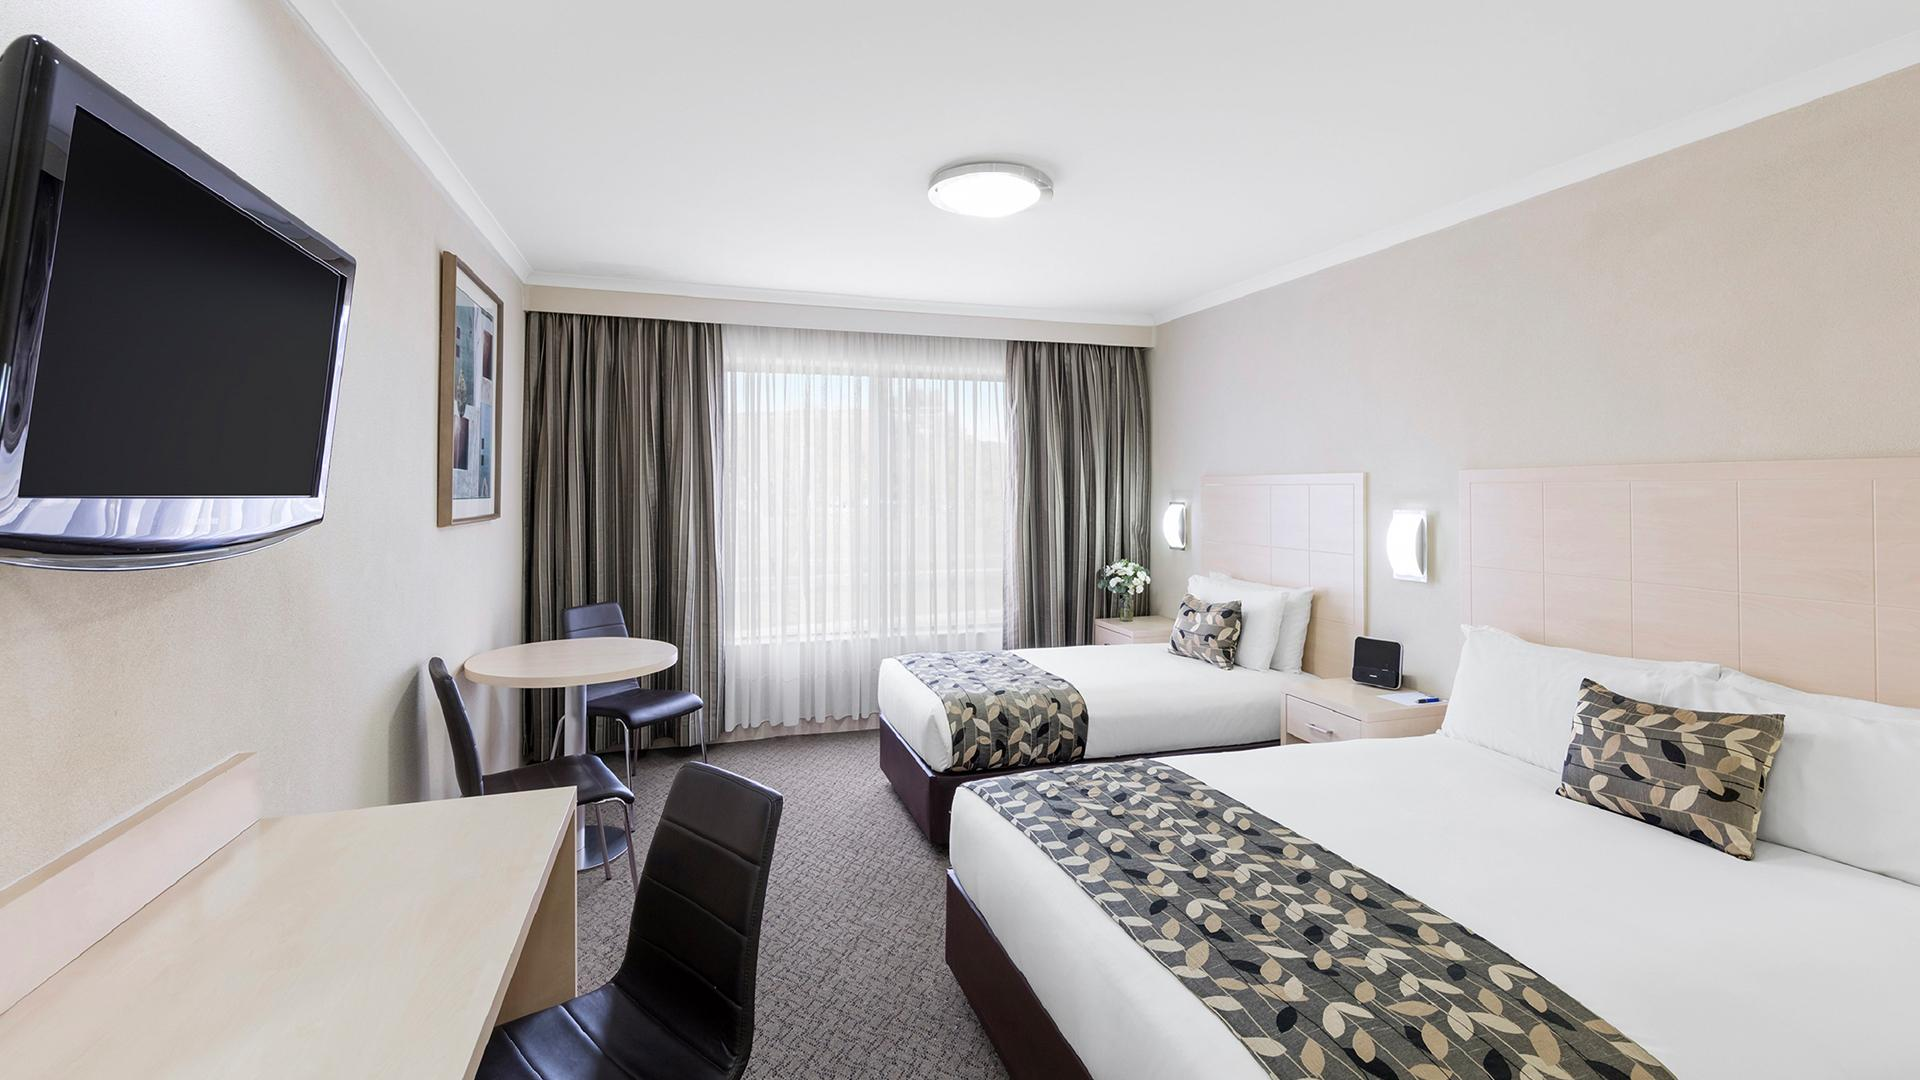 Deluxe Room — Family image 1 at Garden City Hotel, BW Signature Collection by null, Australian Capital Territory, Australia